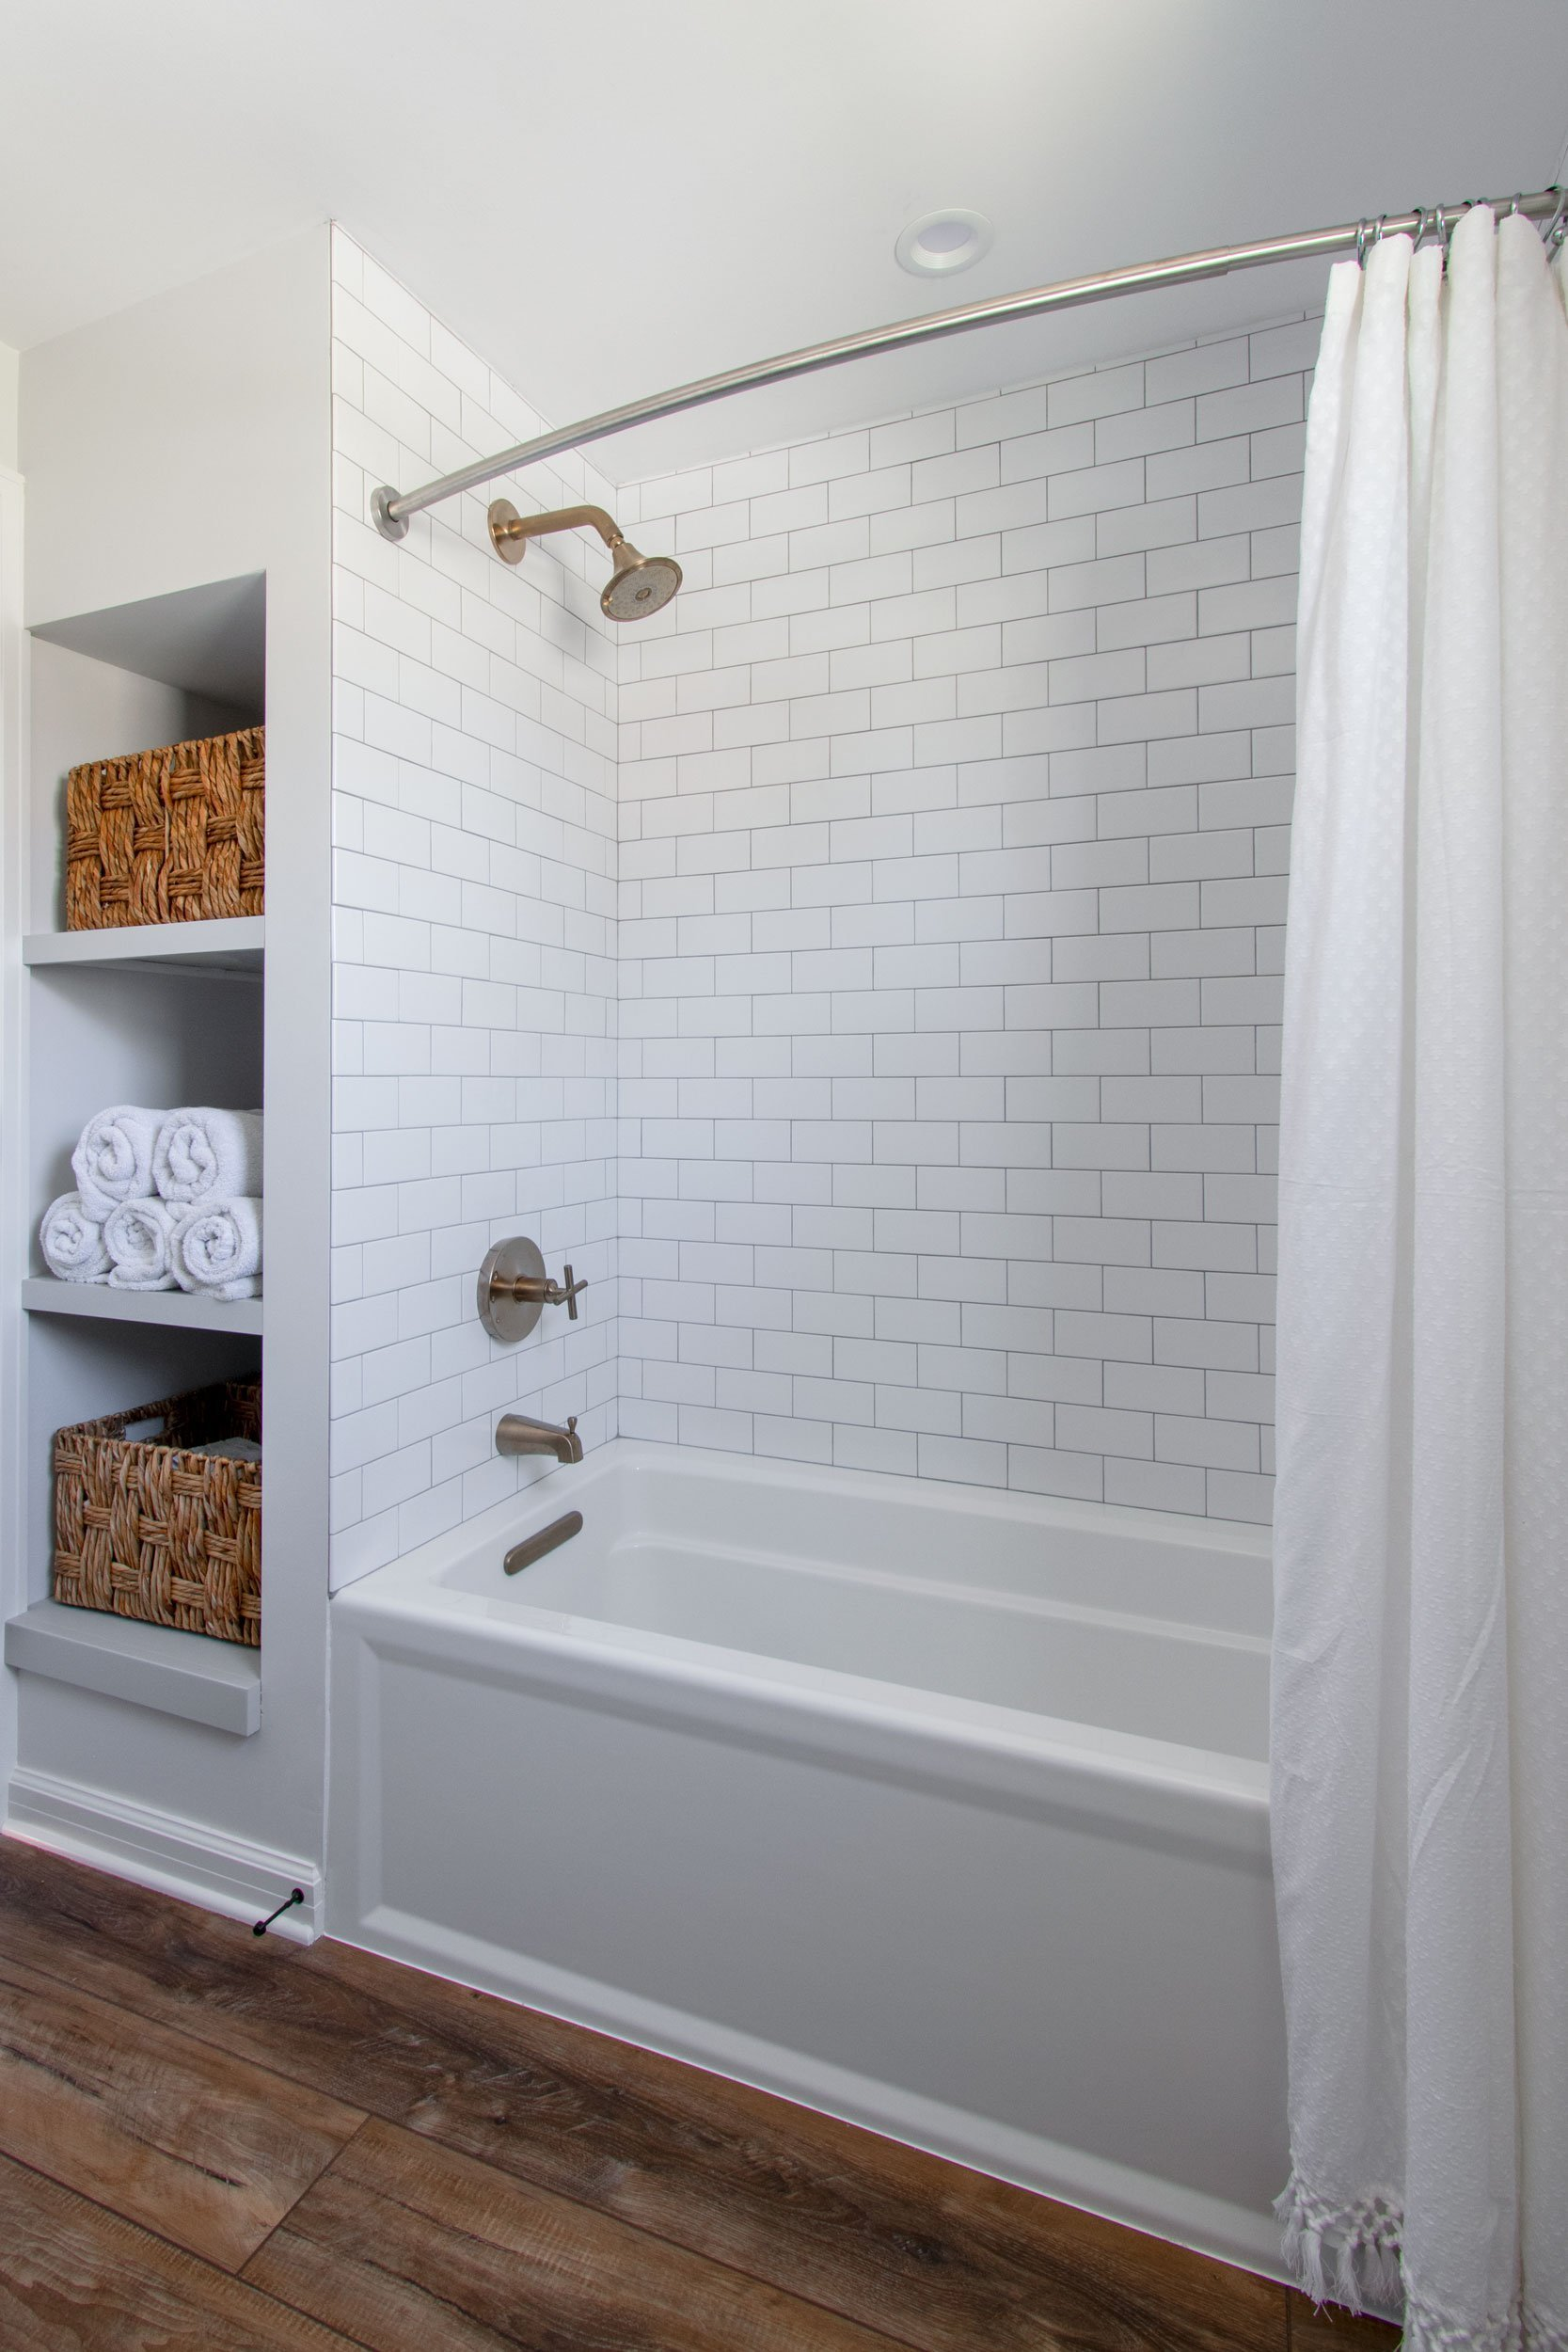 Bathtub with subway tile, bronze fixtures and open shelving